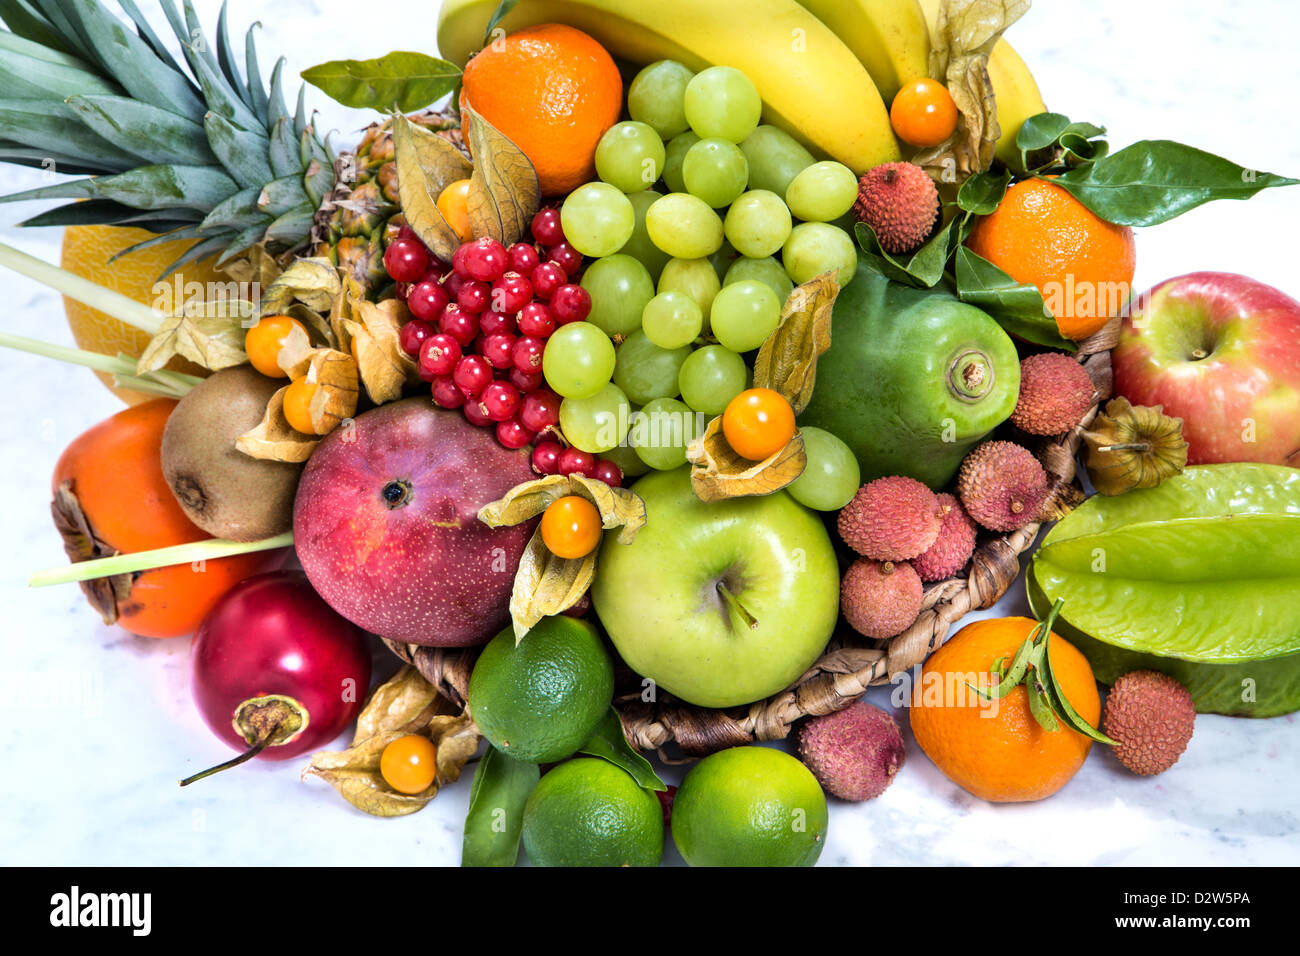 Assortiment de fruits exotiques vitamines Photo Stock